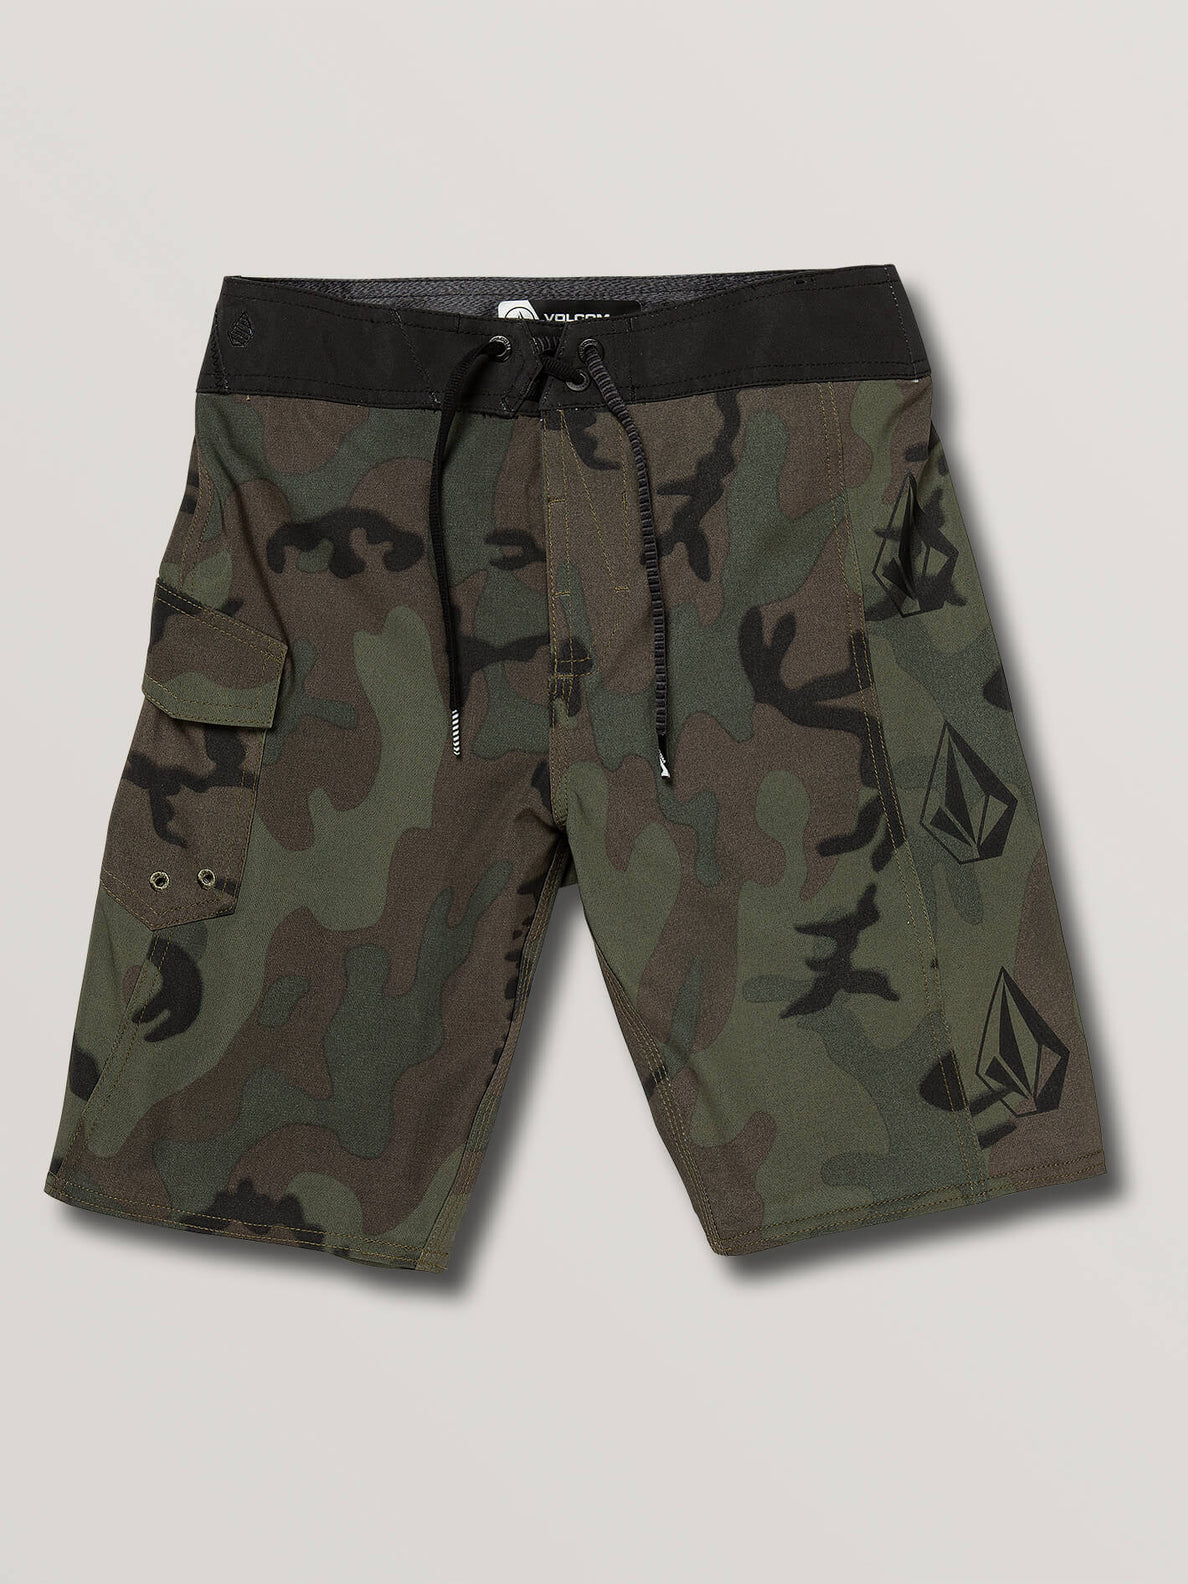 Big Boys Deadly Stones Mod Boardshorts In Camouflage, Front View